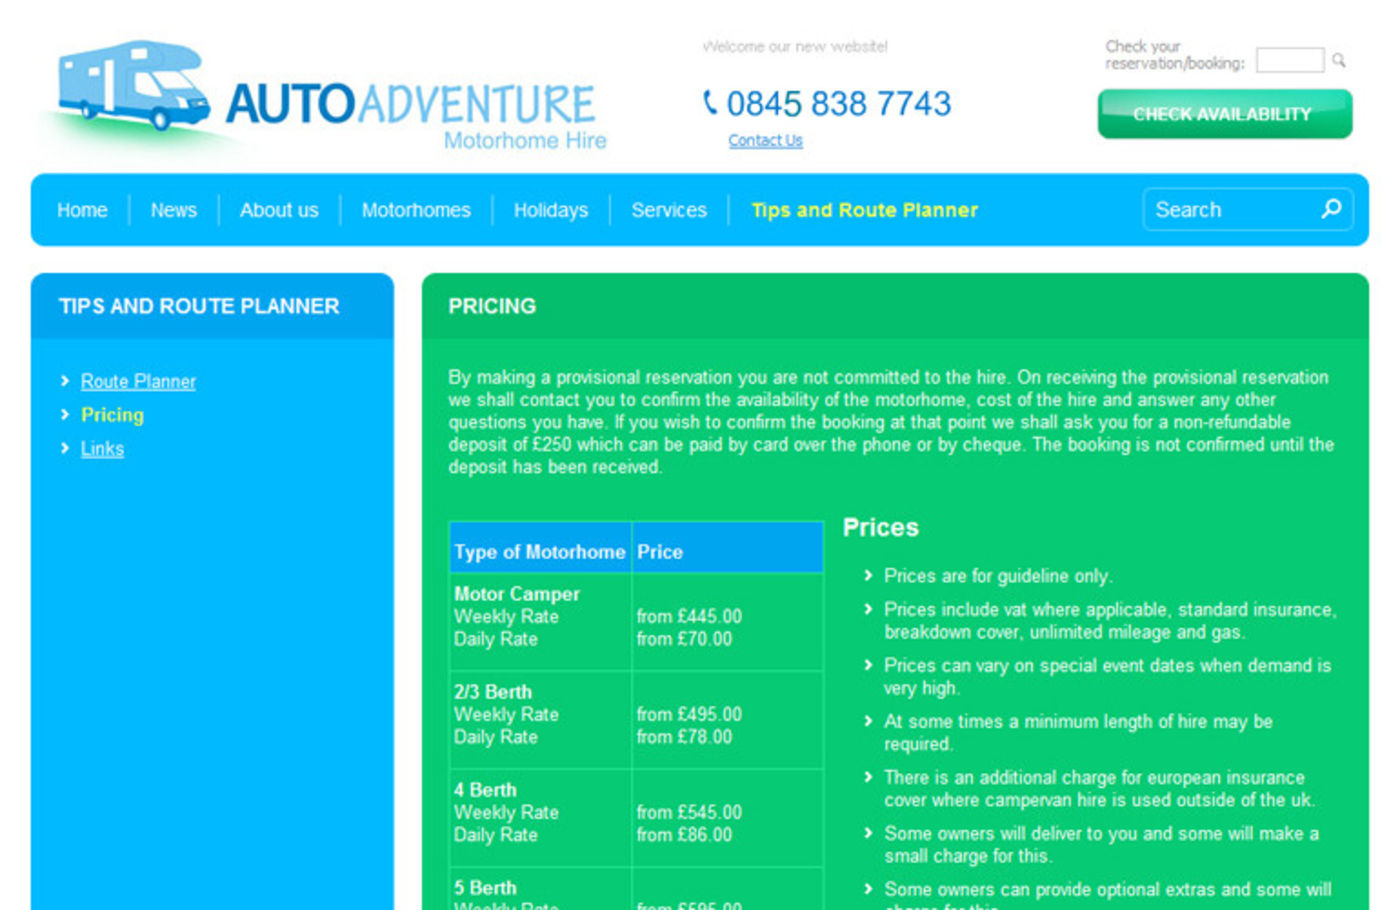 Auto Adventure Regular page